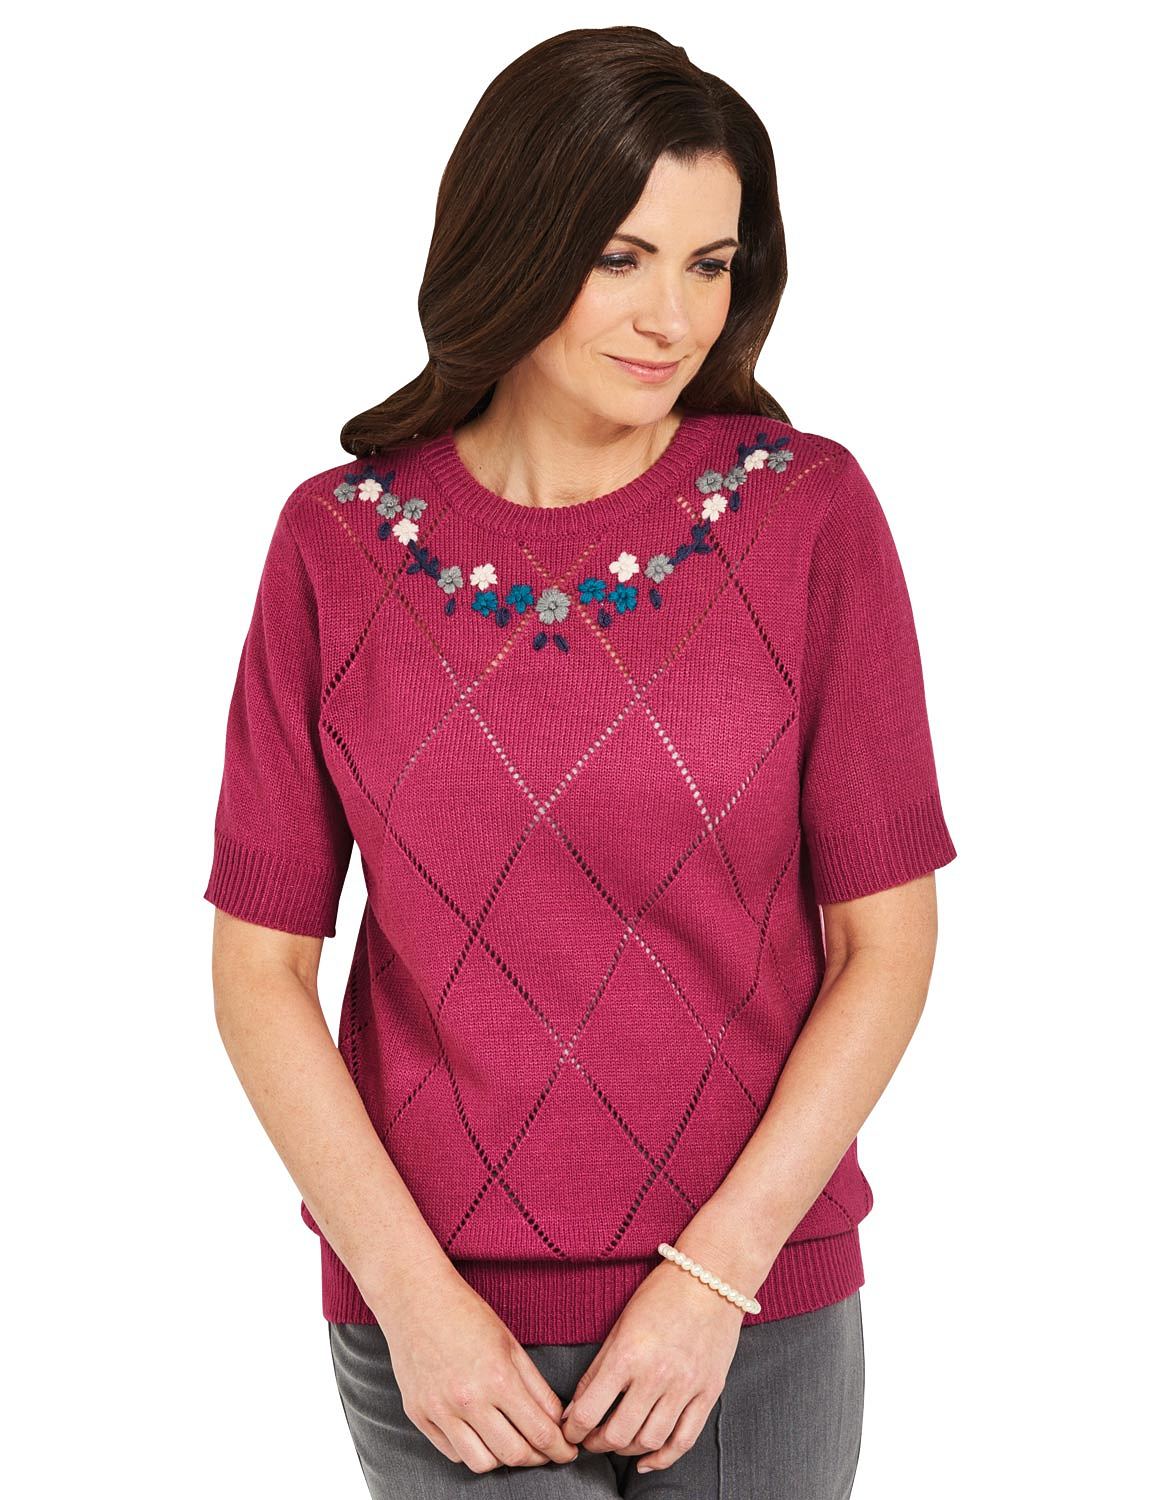 Ladies Hand Embroidered Short Sleeve Pointelle Jumper